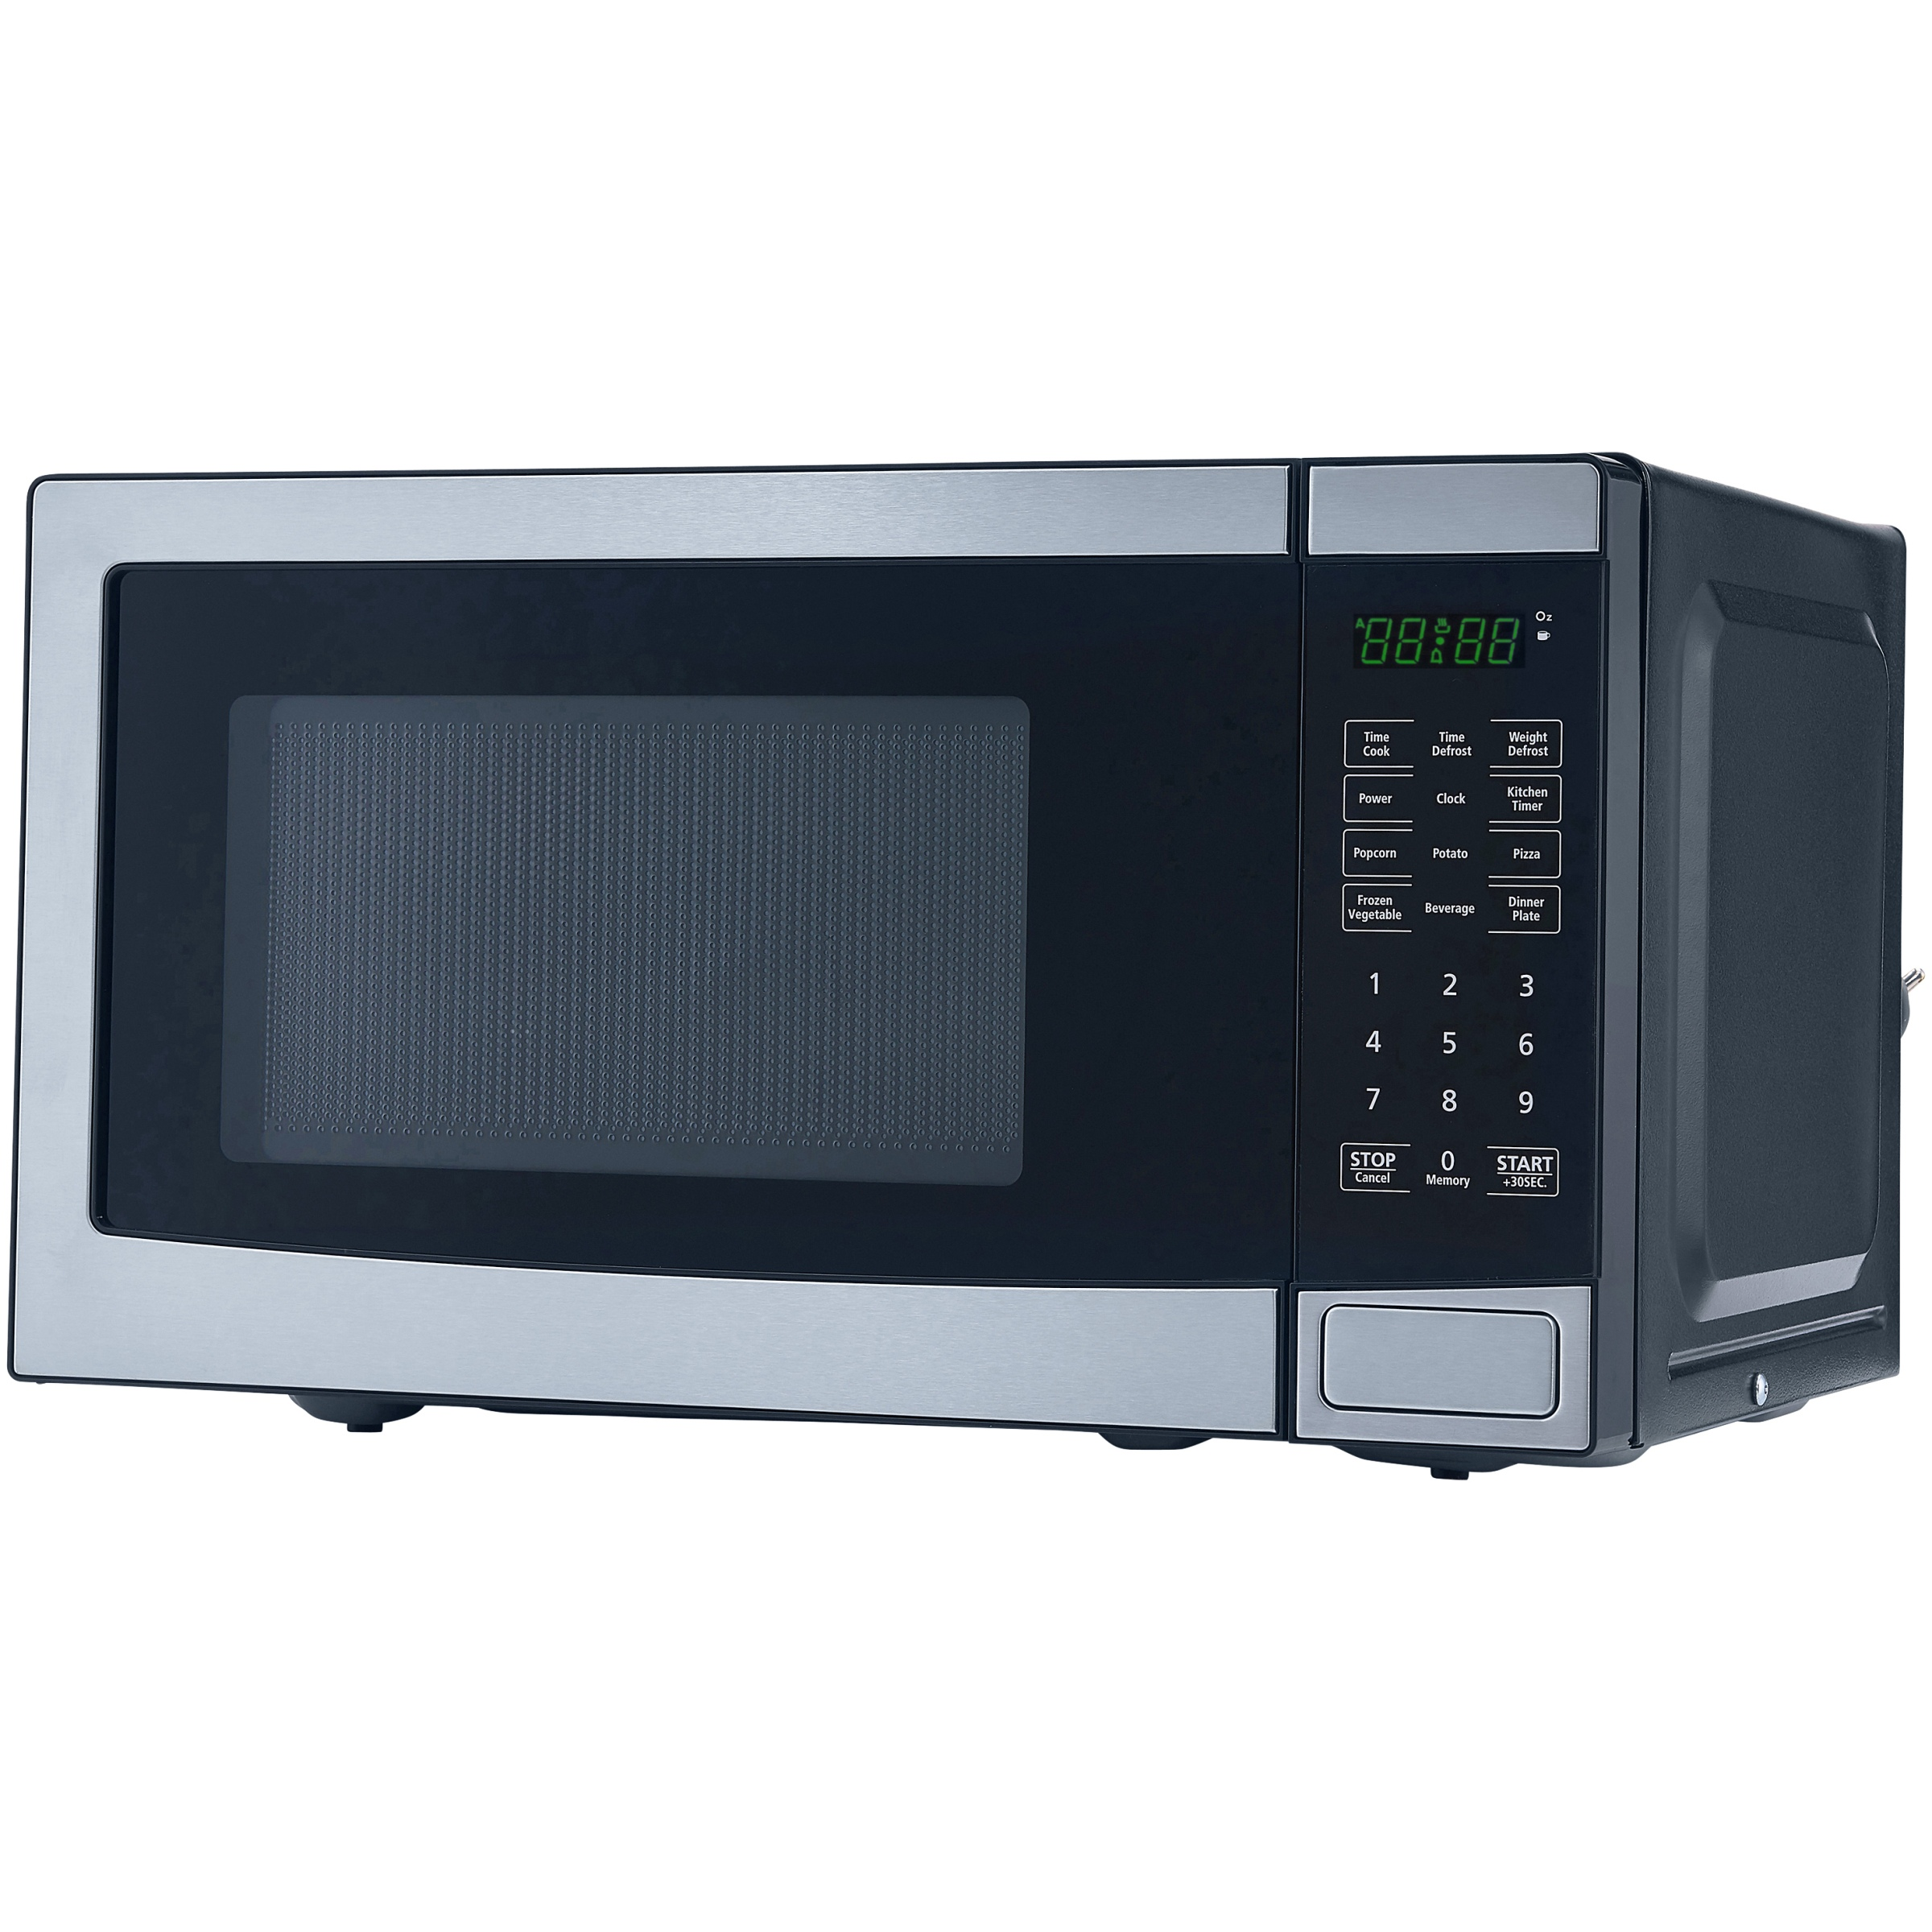 Ft 700w Stainless Steel Microwave With 10 Levels